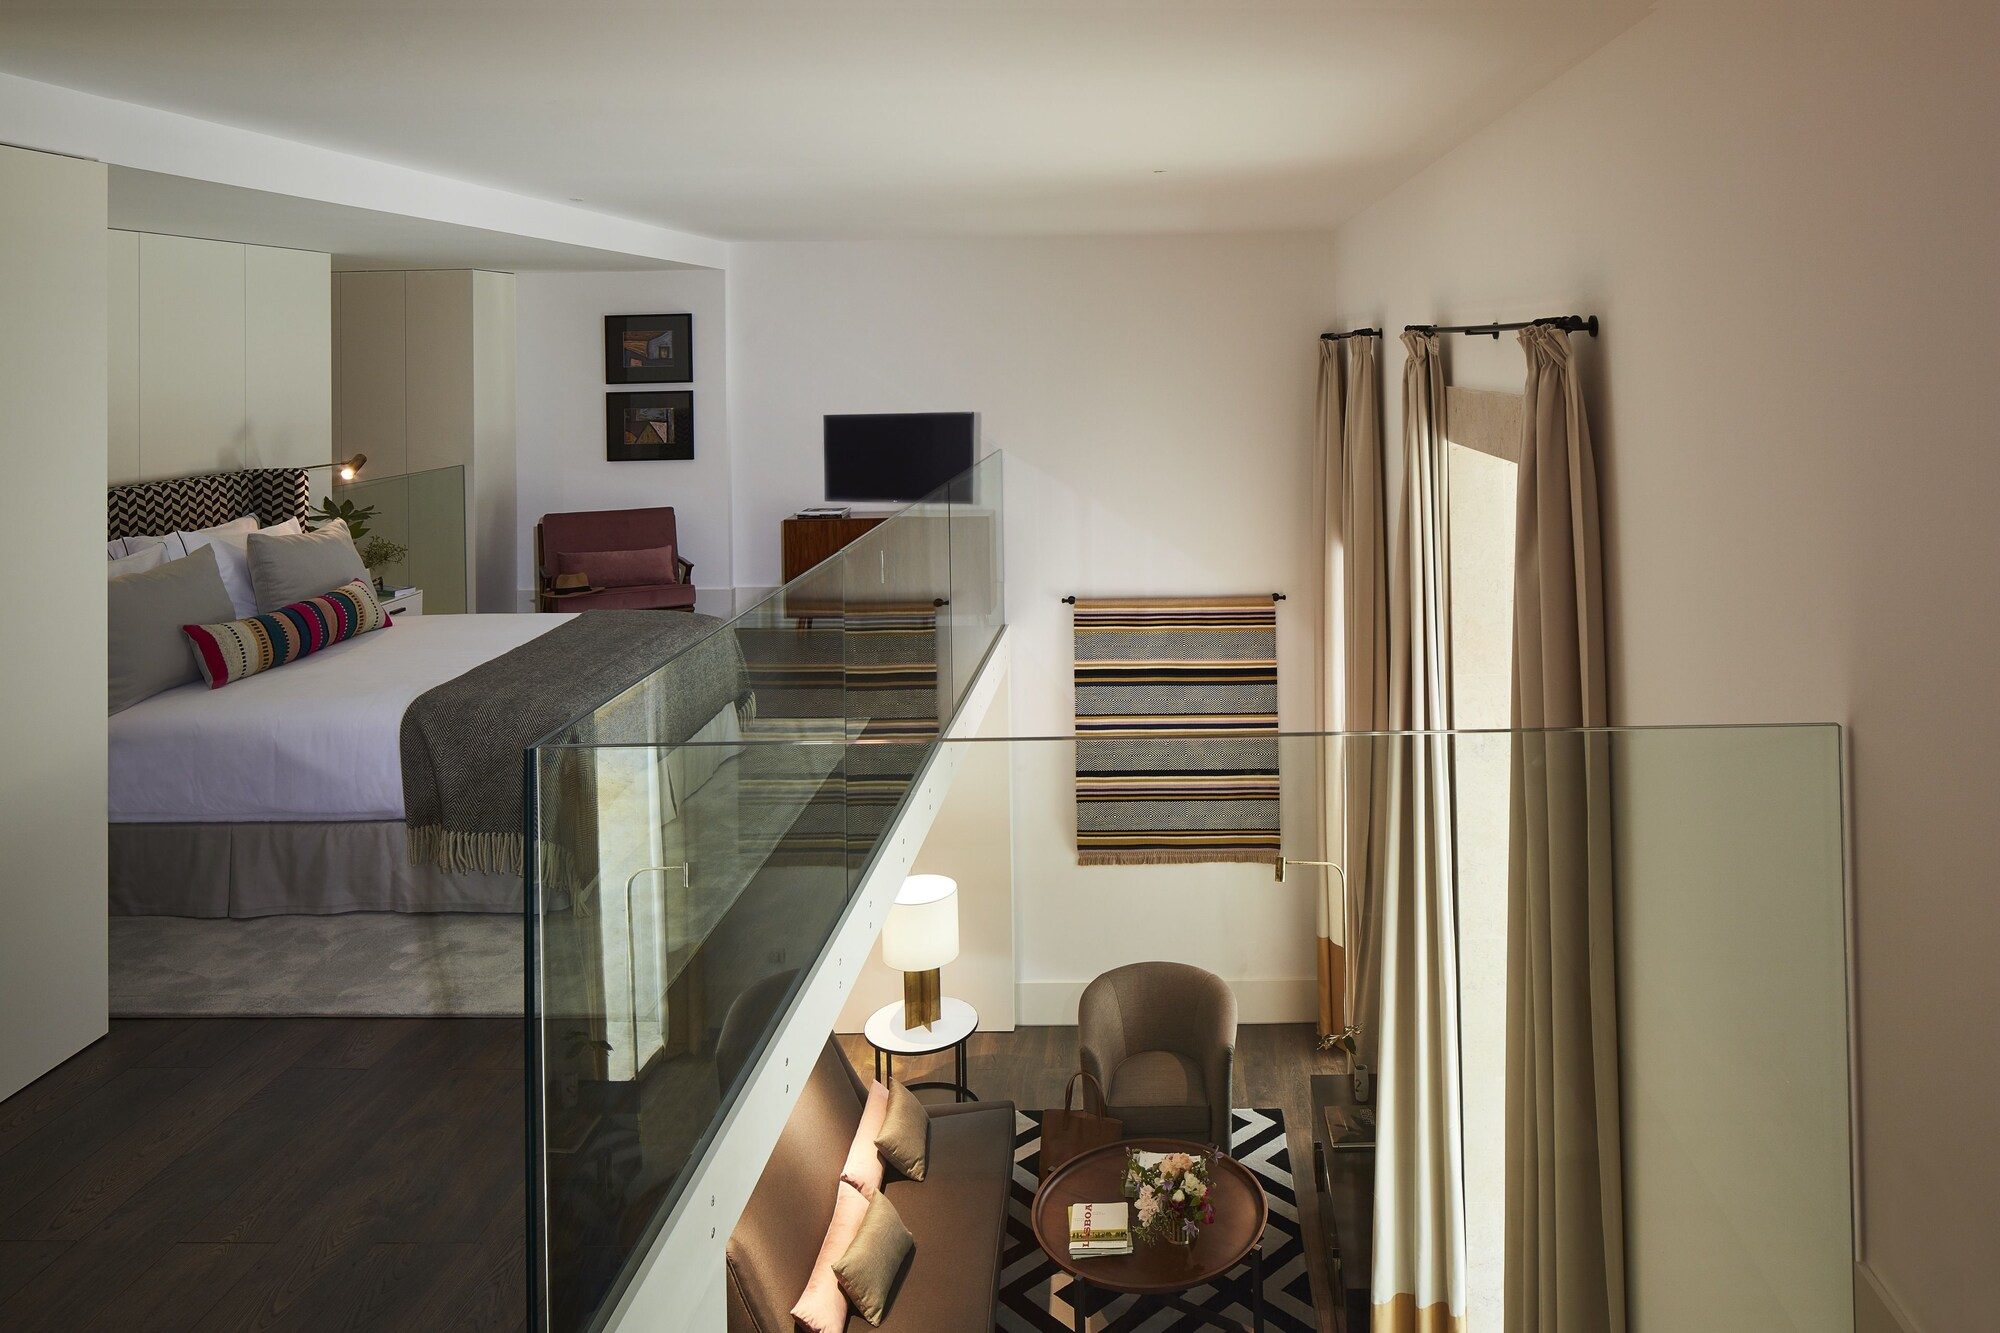 Best Hotels in Central Portugal hotels Best Hotels in Central Portugal THE LUMIARES